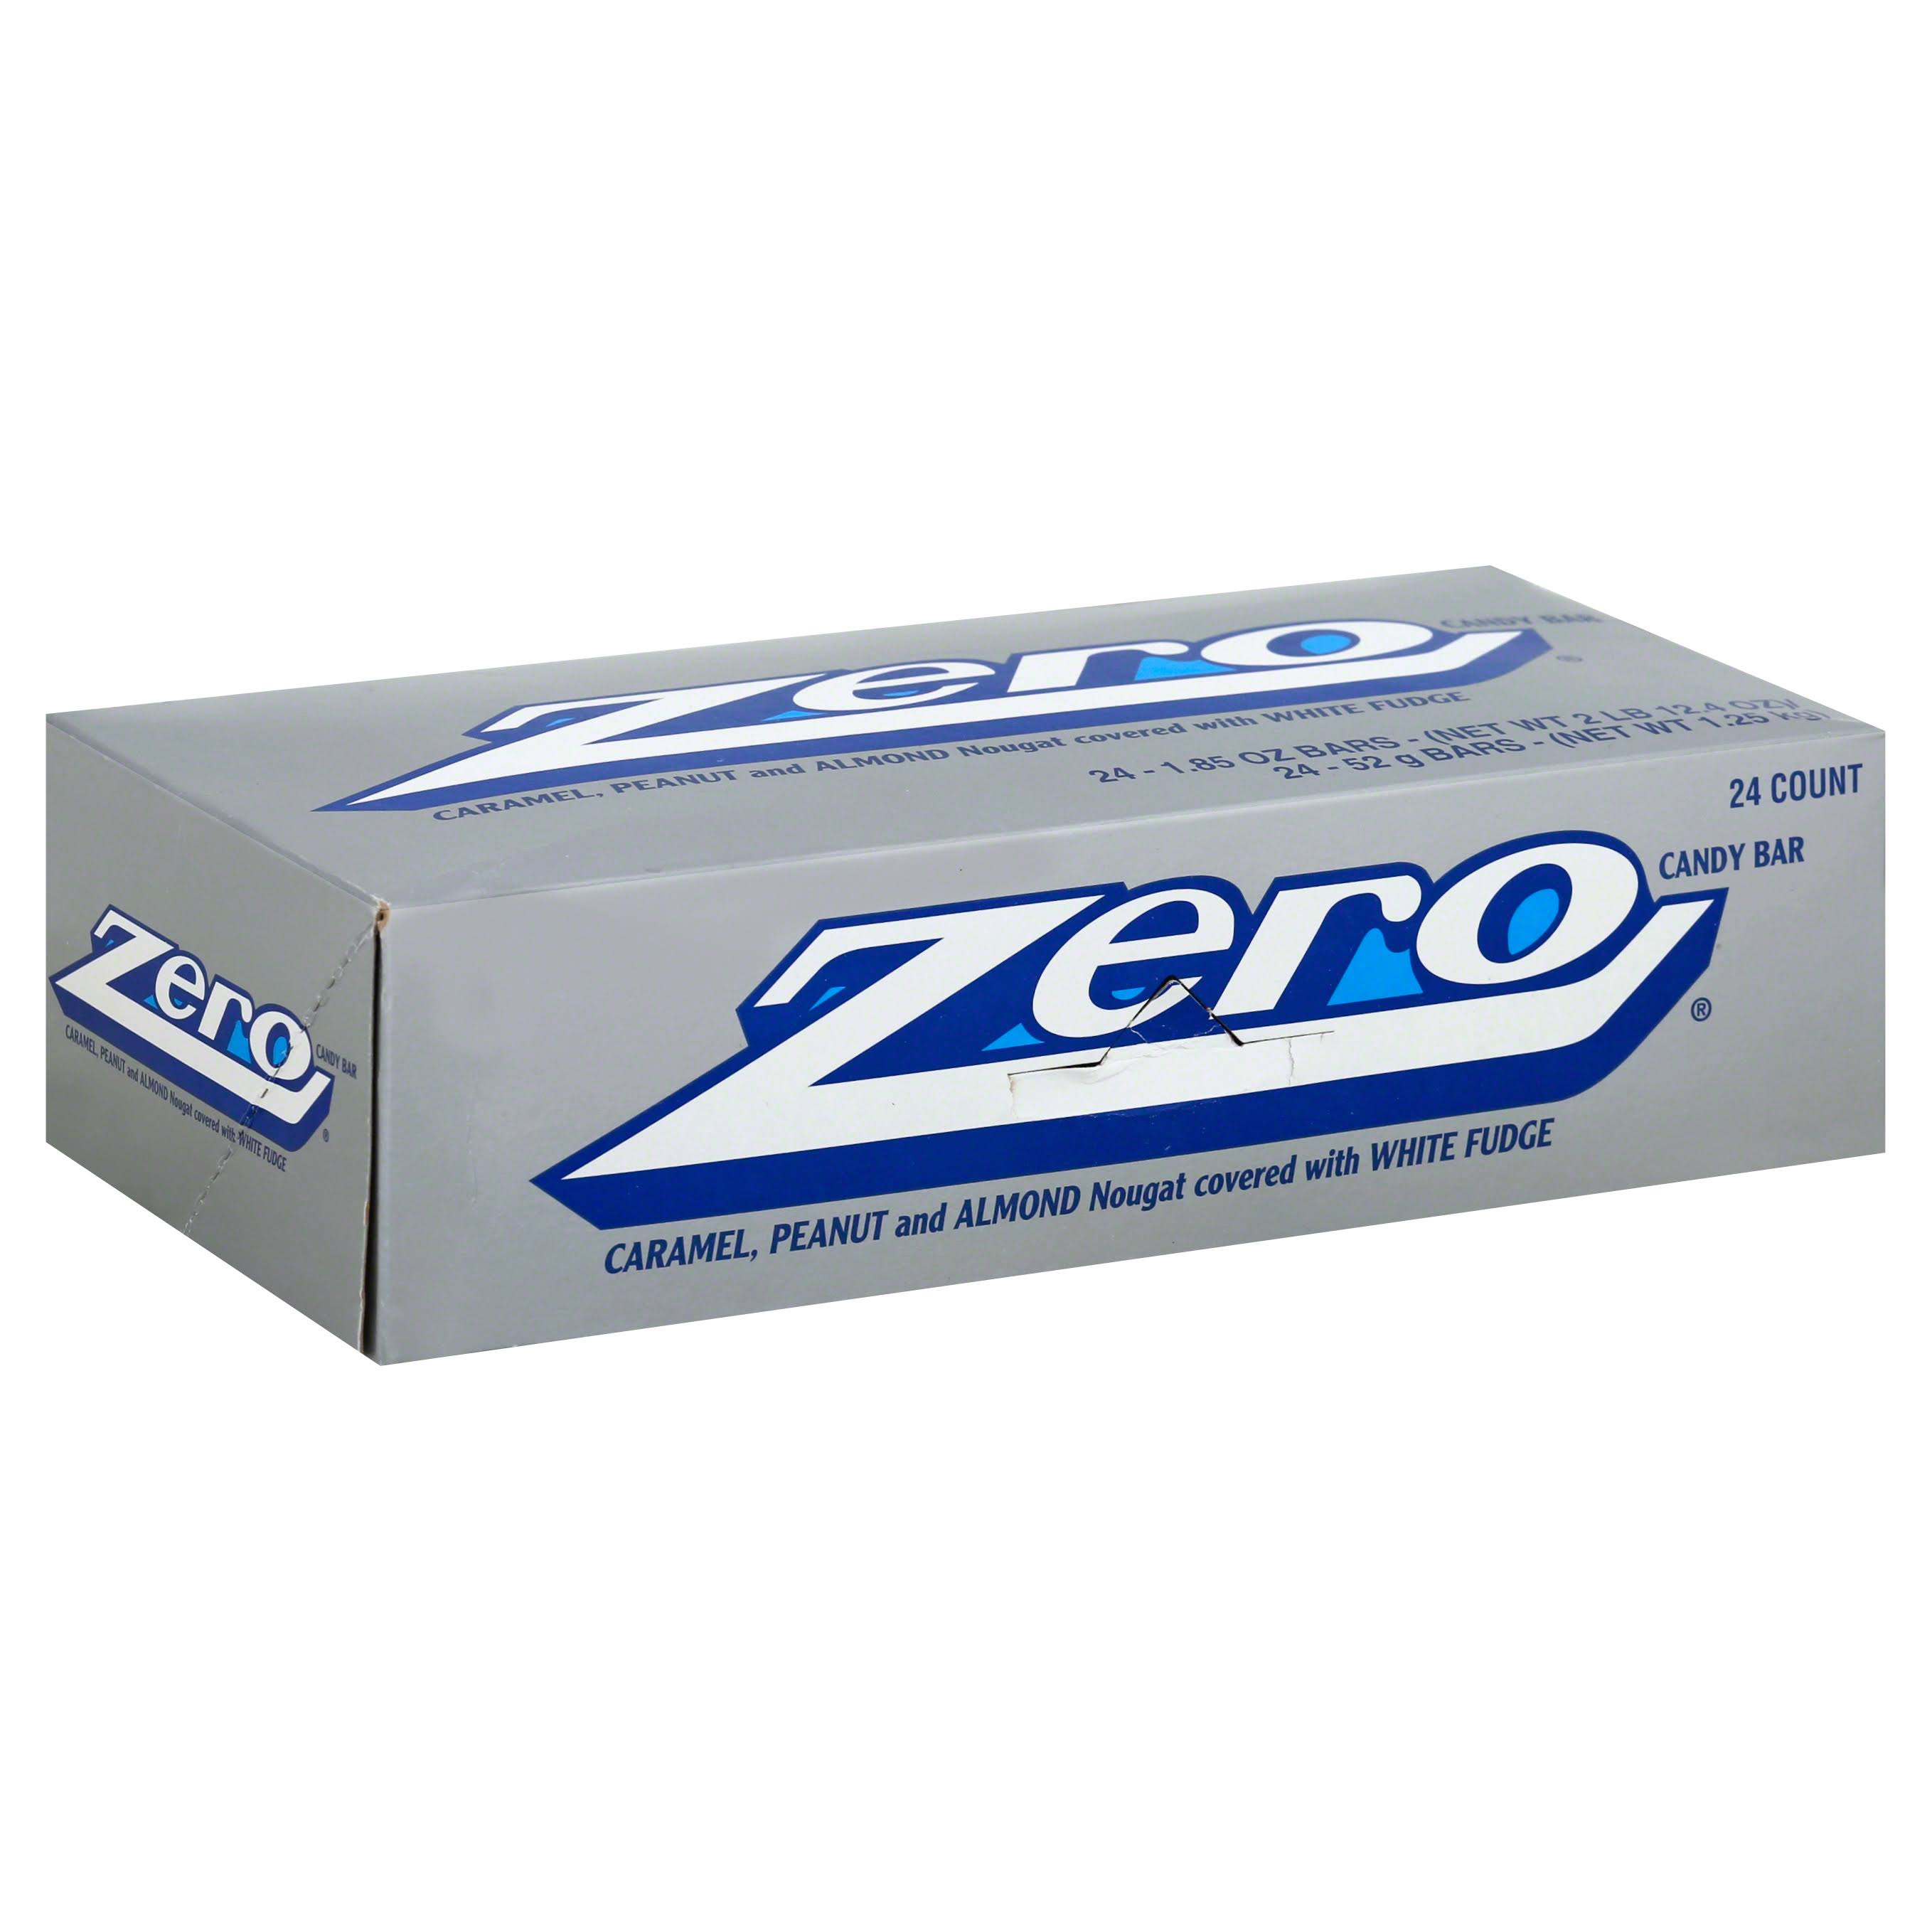 Hershey's Zero White Fudge Candy Bar - 54g, 24ct